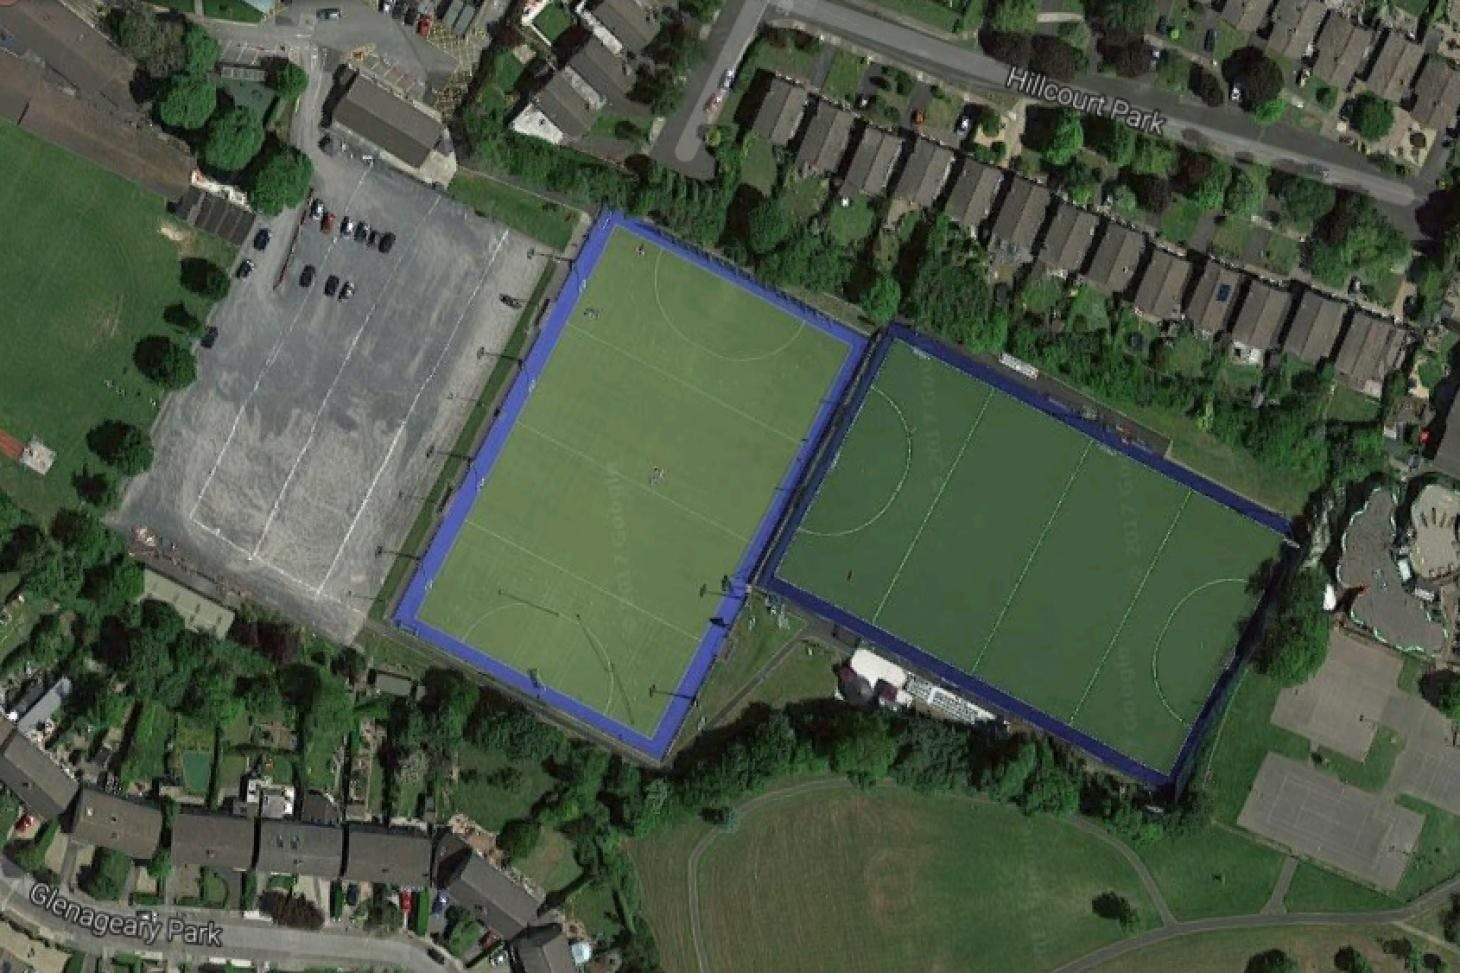 Rathdown School Campus Union | Astroturf rugby pitch